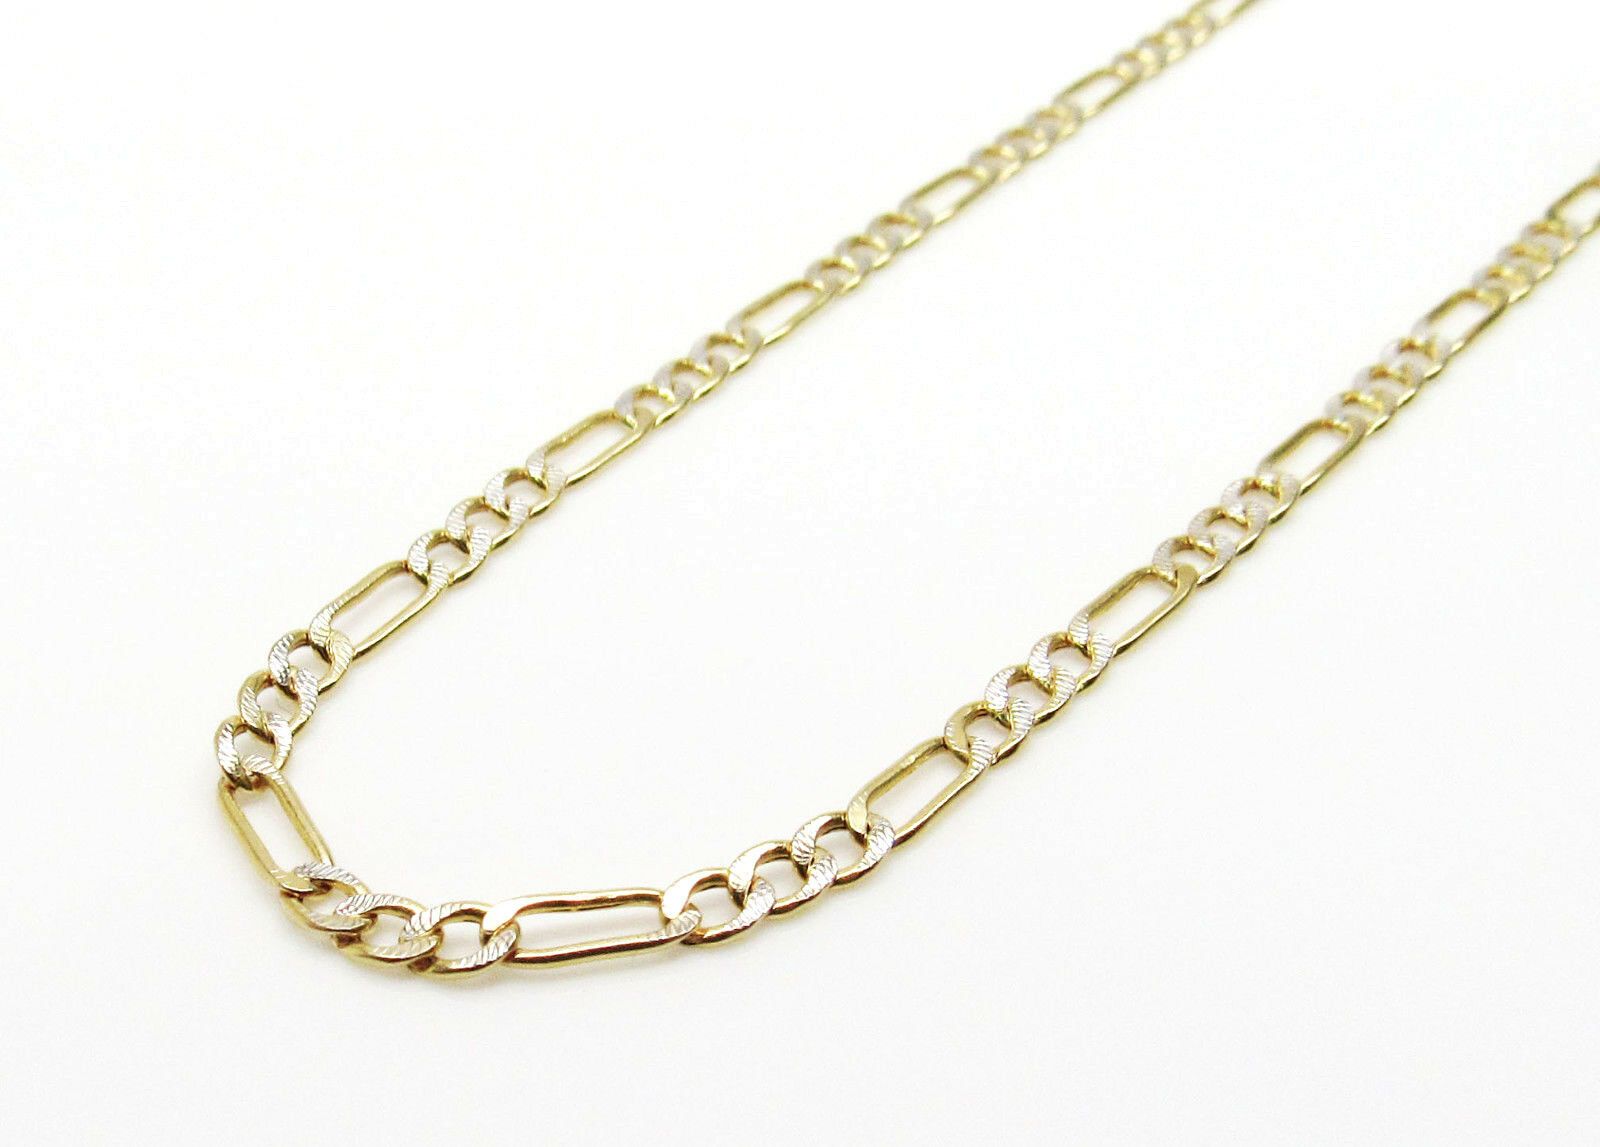 10K Hollow gold Diamond Cut Figaro Chain 20 Inches 2MM 2.4 Grams